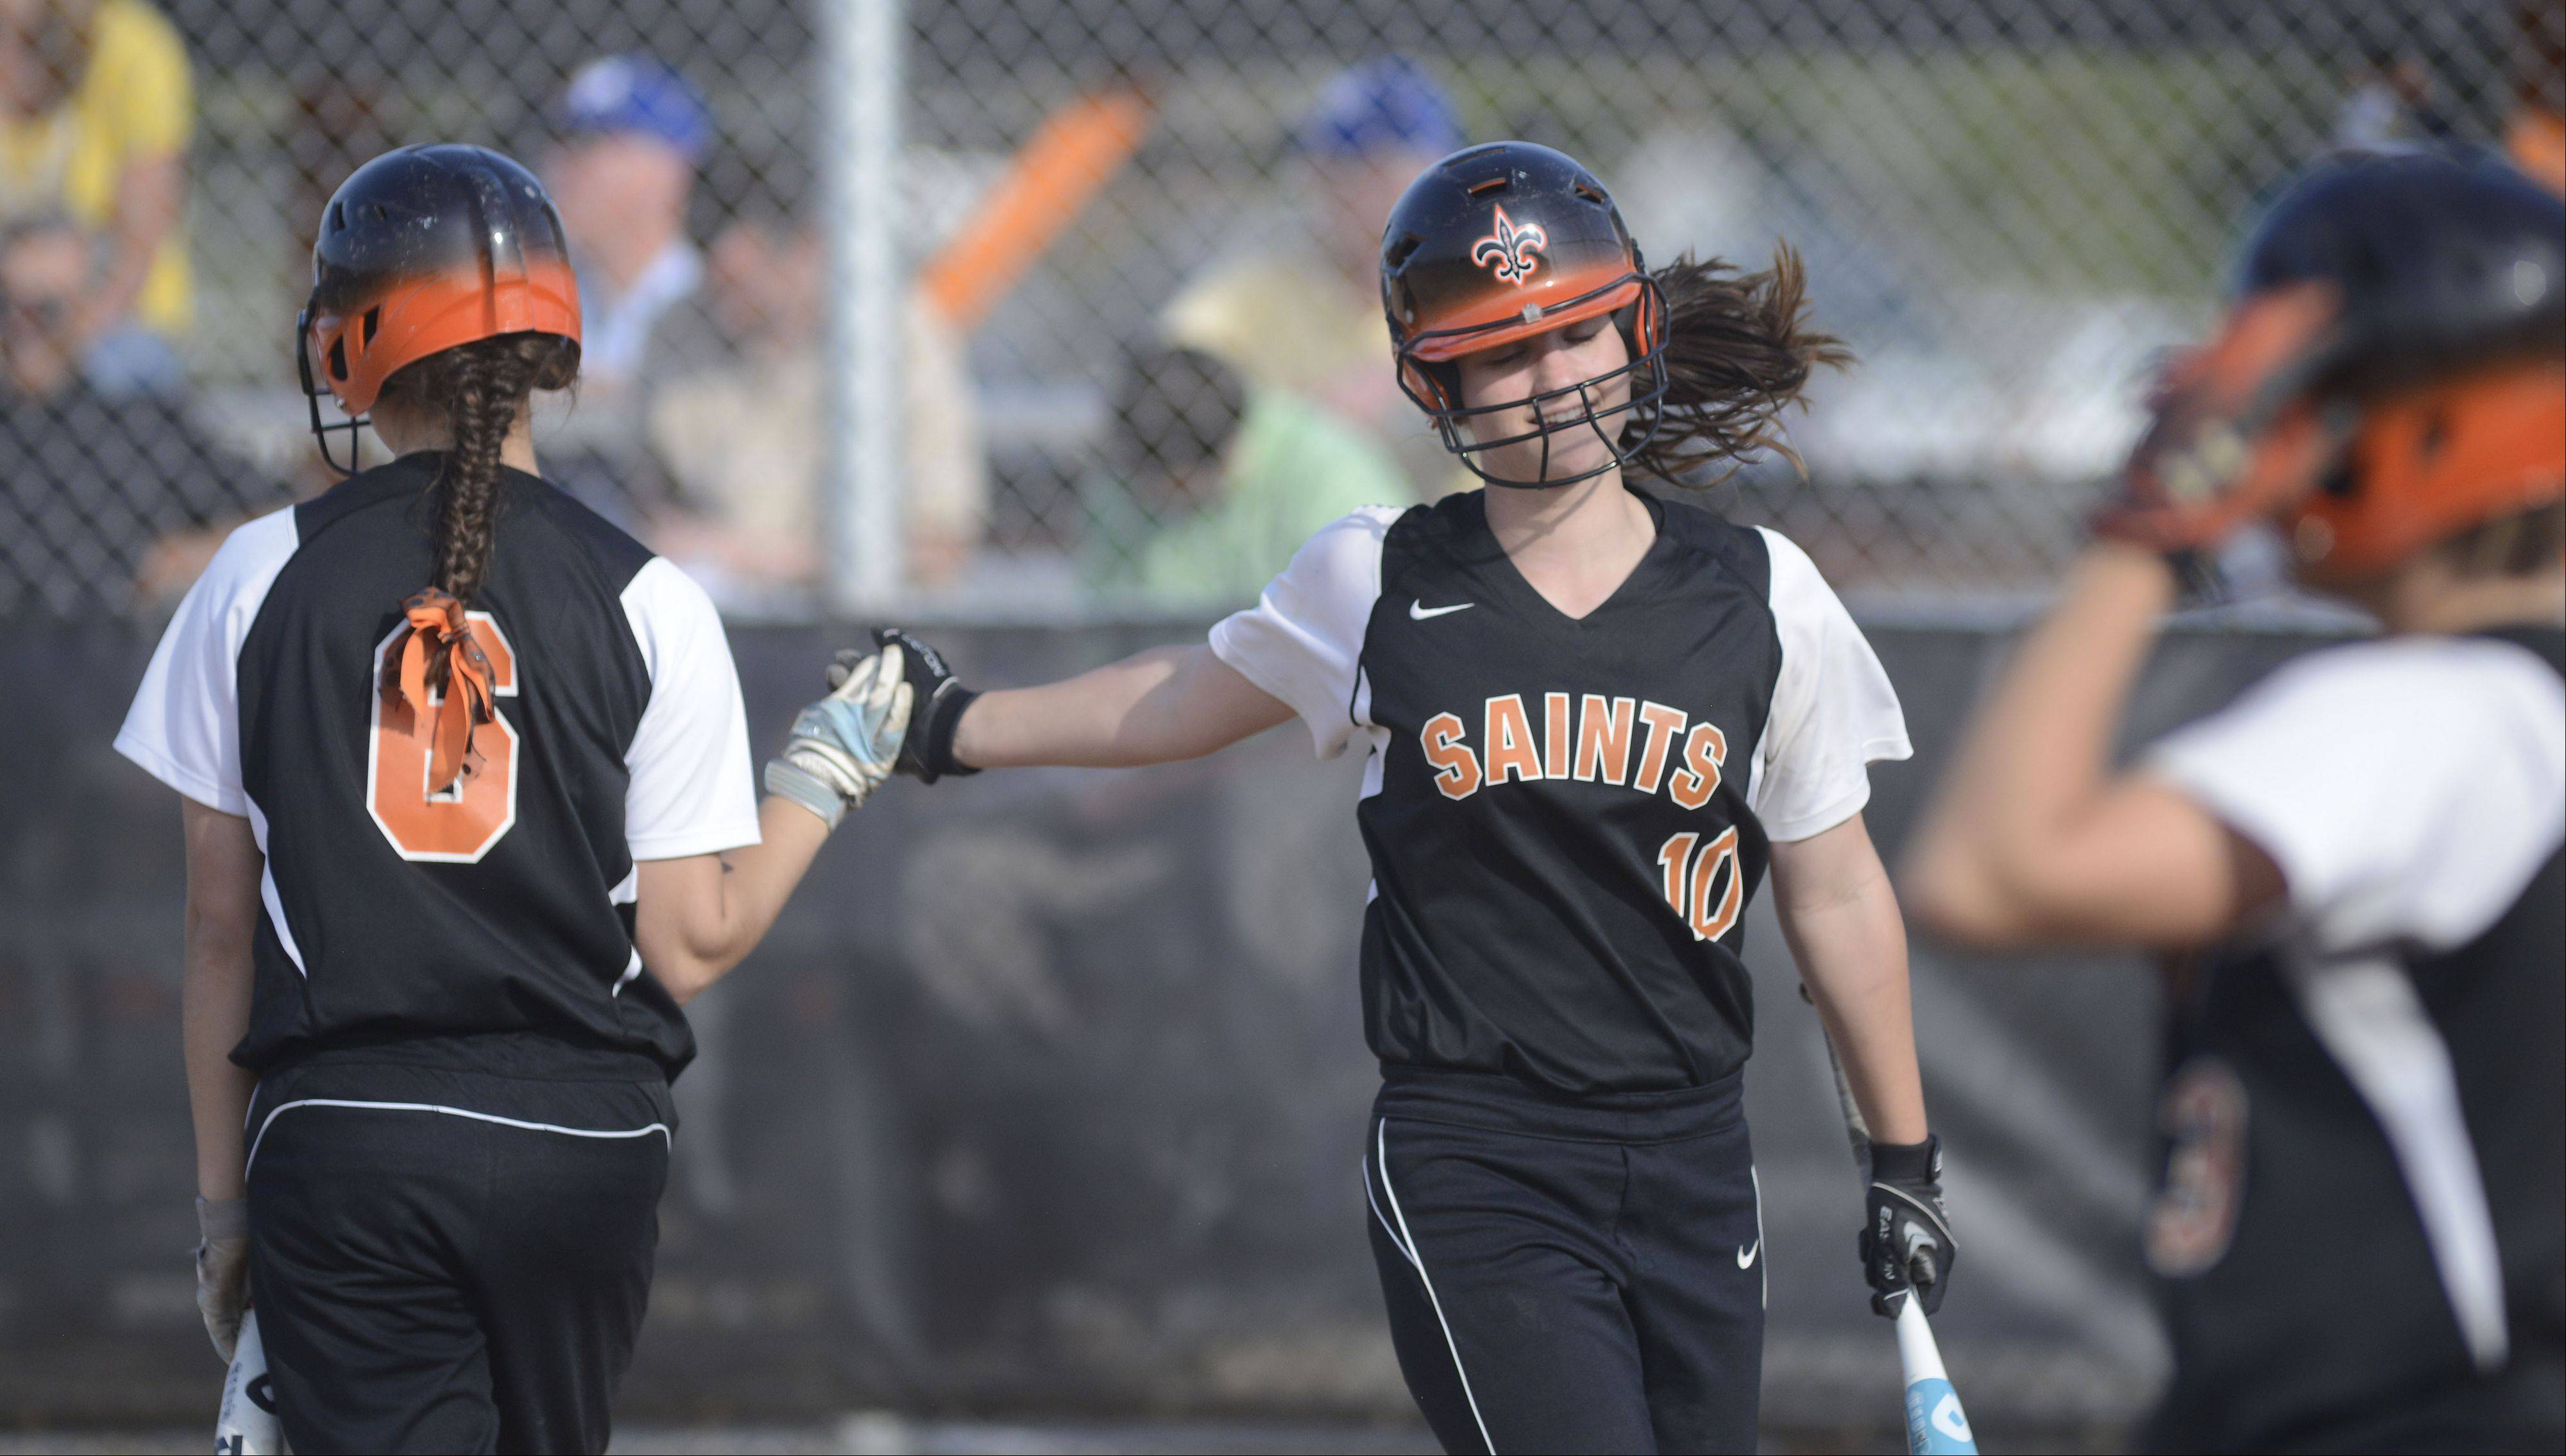 St. Charles East's Kate Peterburs (10) gets congrats after scoring a run in the fourth inning from teammate Olivia Cheatham on Tuesday, April 30.